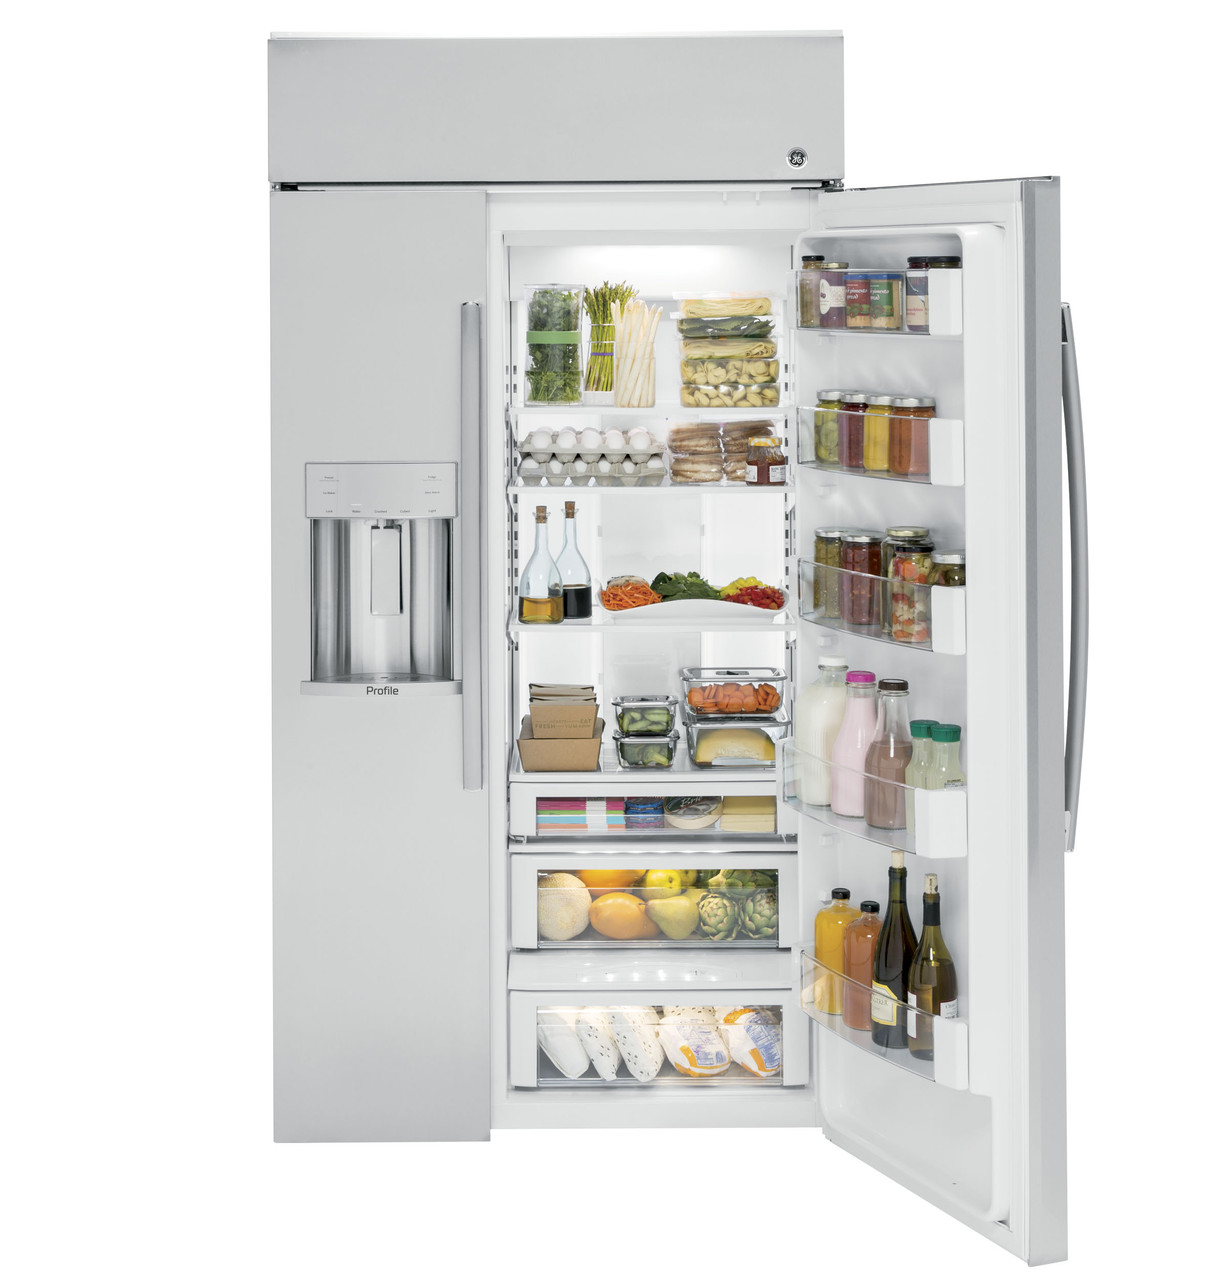 Ge Profile Series 42 Built In Side By Side Refrigerator With Dispenser Psb42yskss Ge Appliances